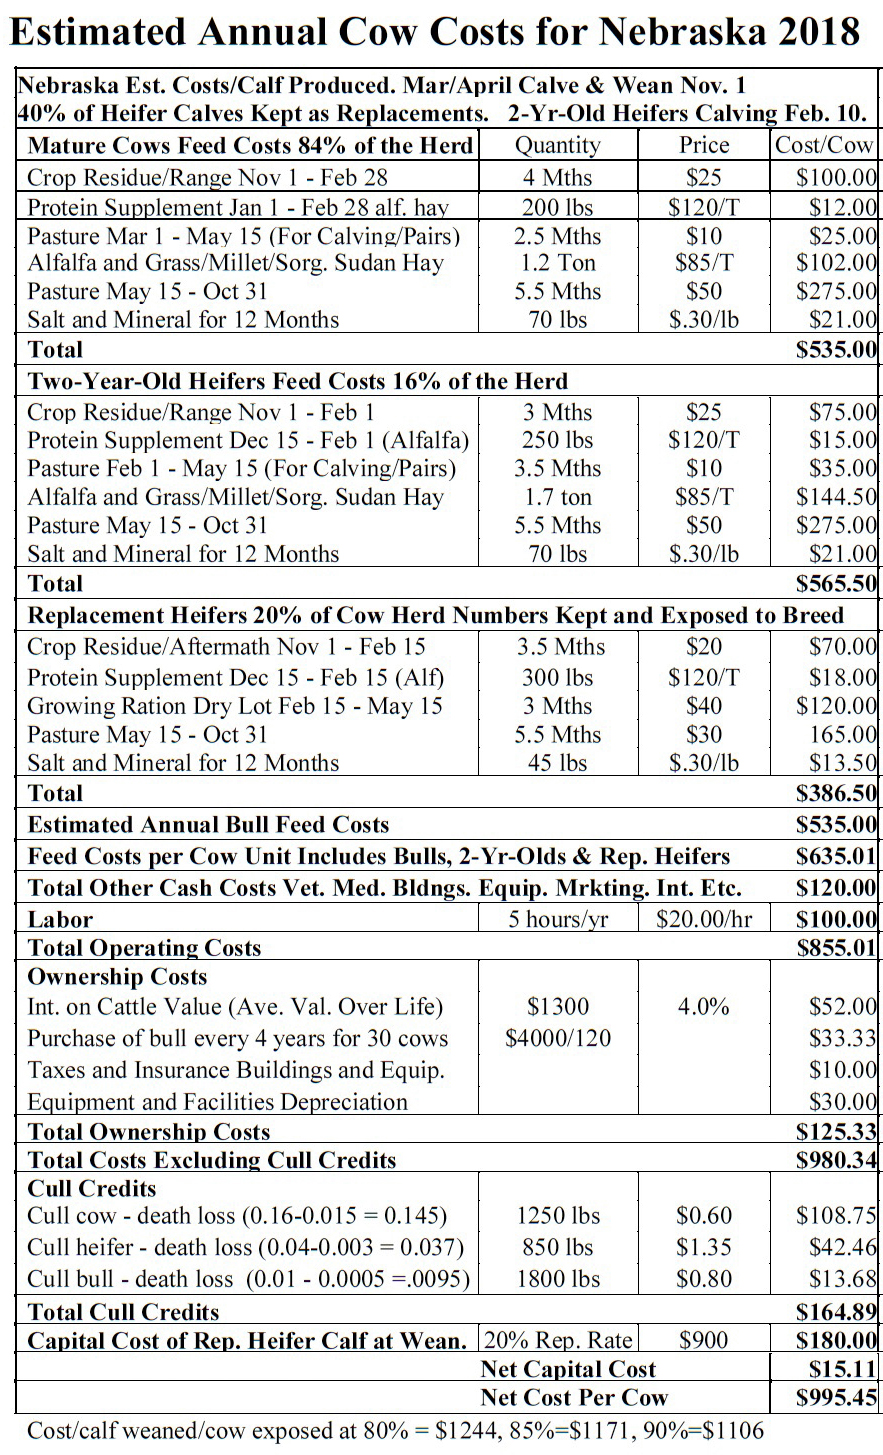 Estimated Annual Cow Costs Table